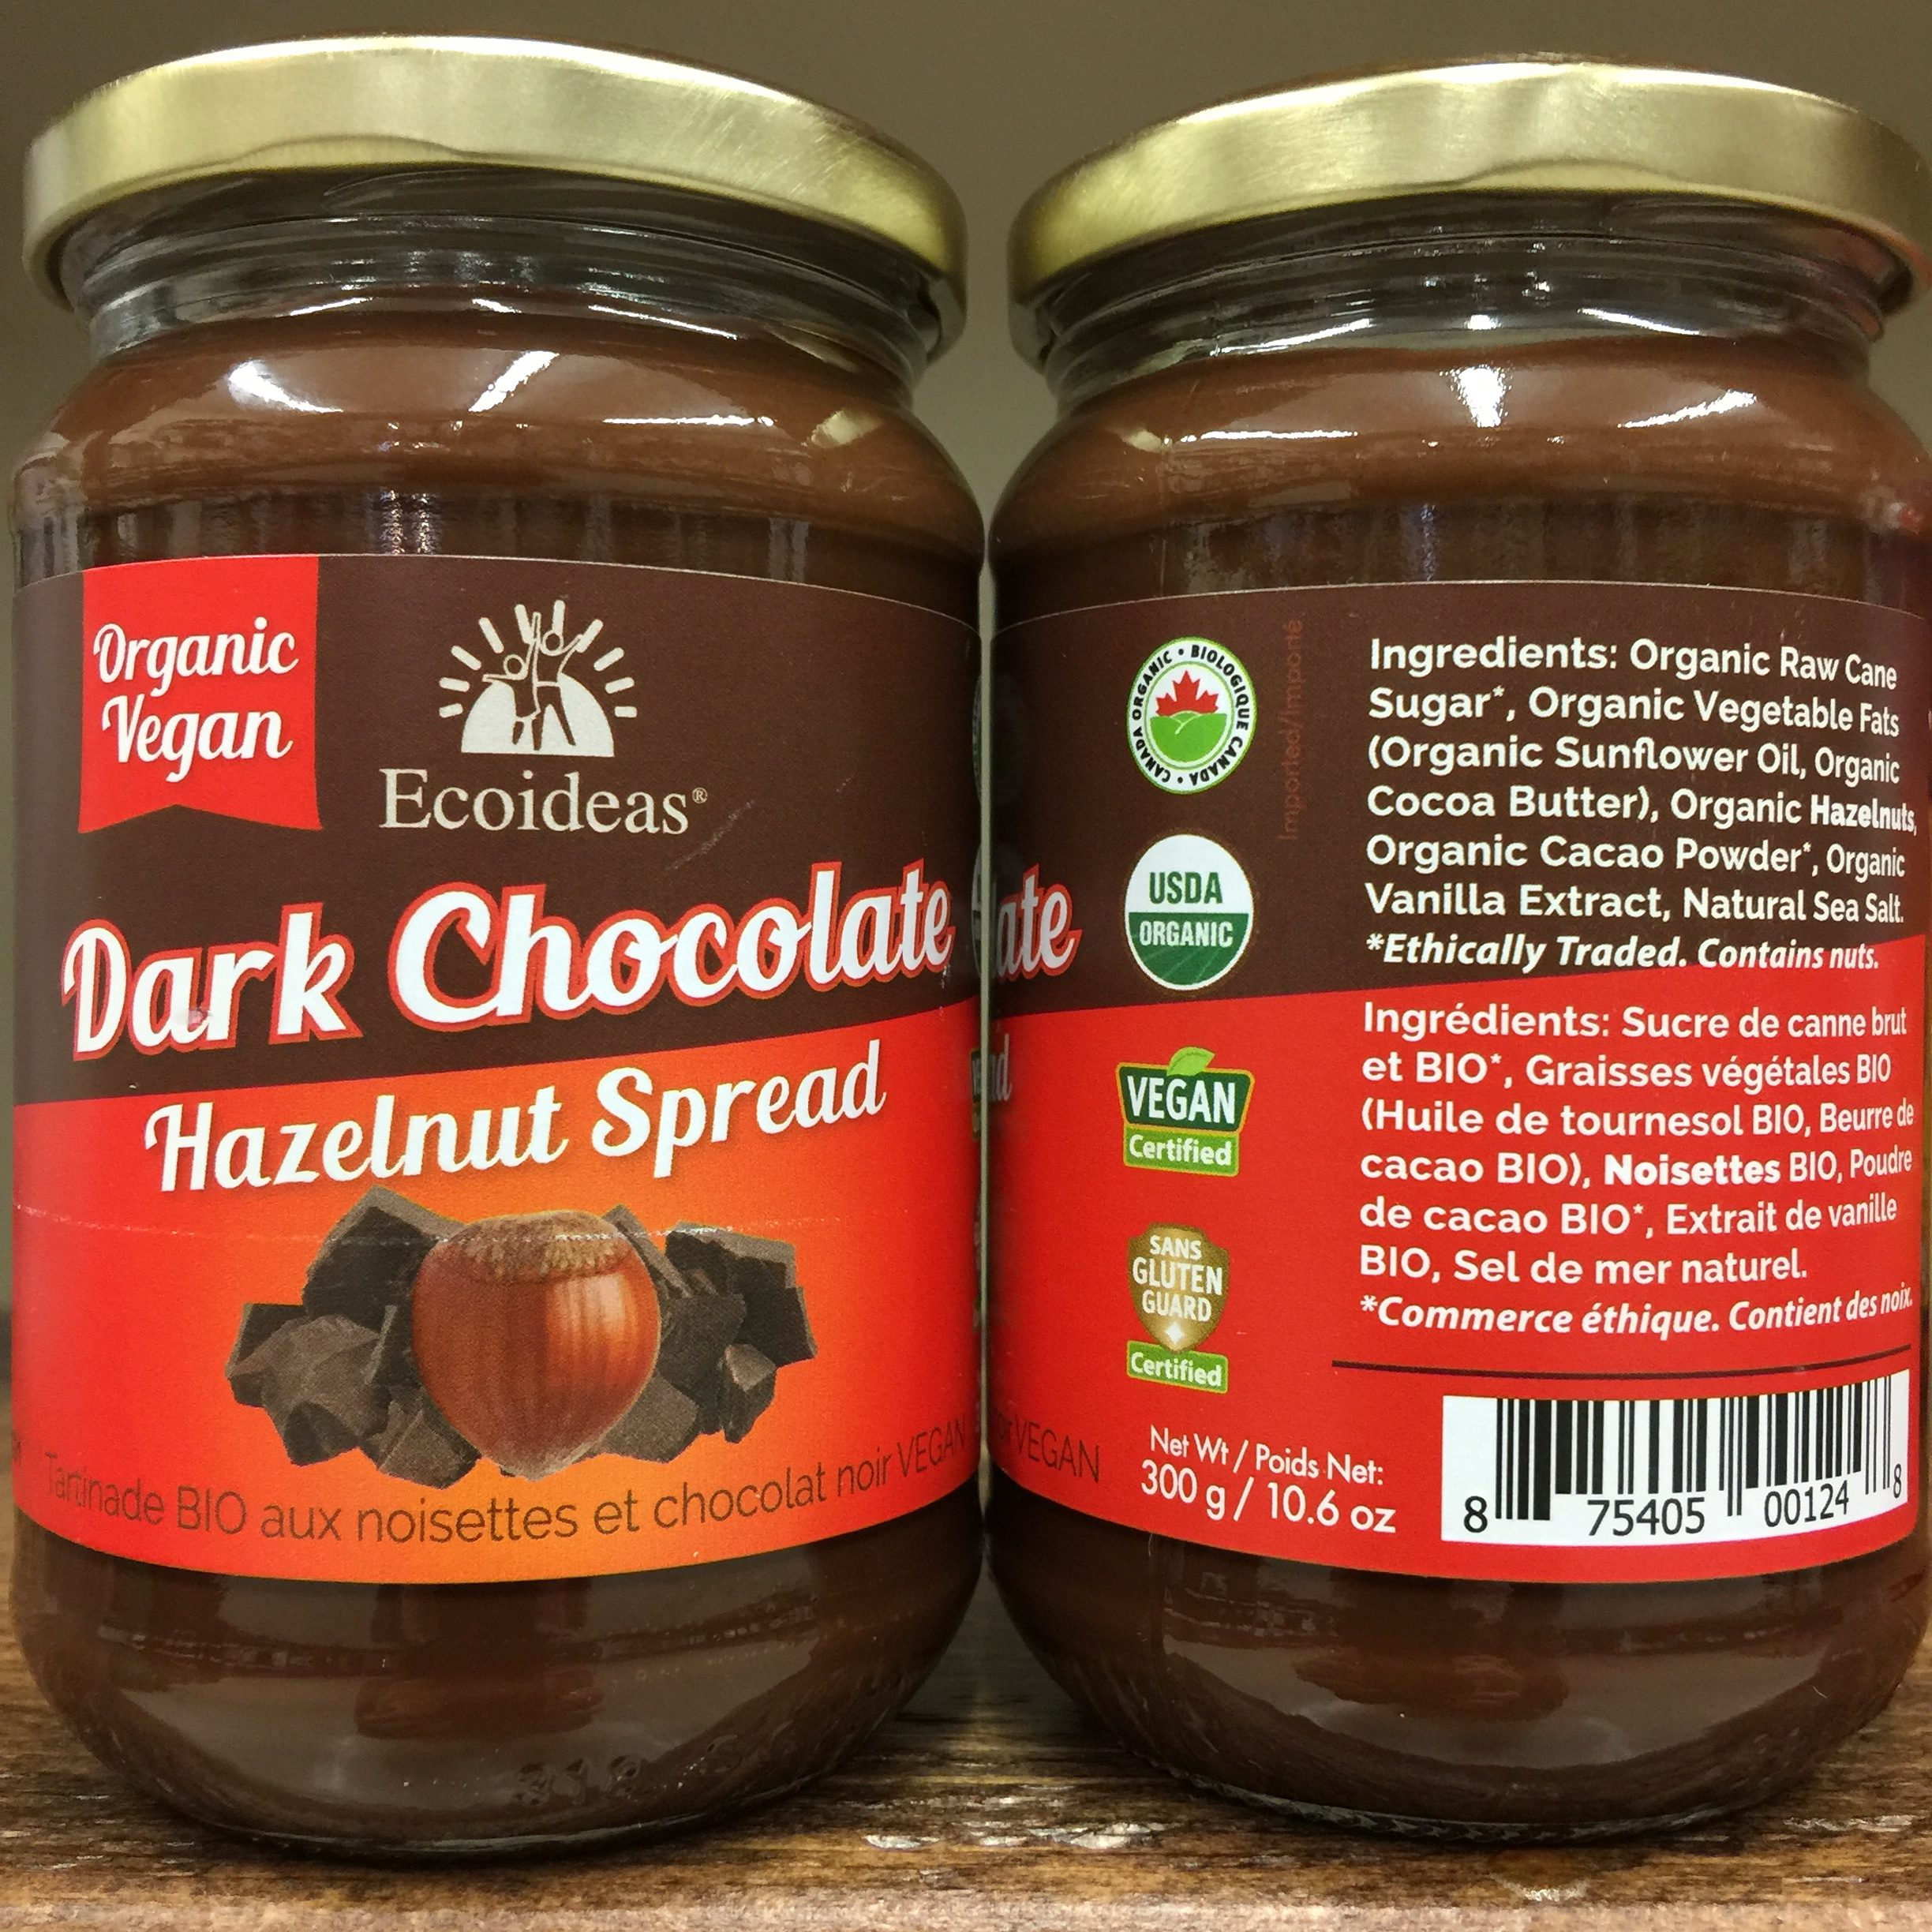 Ecoideas Dark Chocolate Hazelnut Spread - 300g. Image